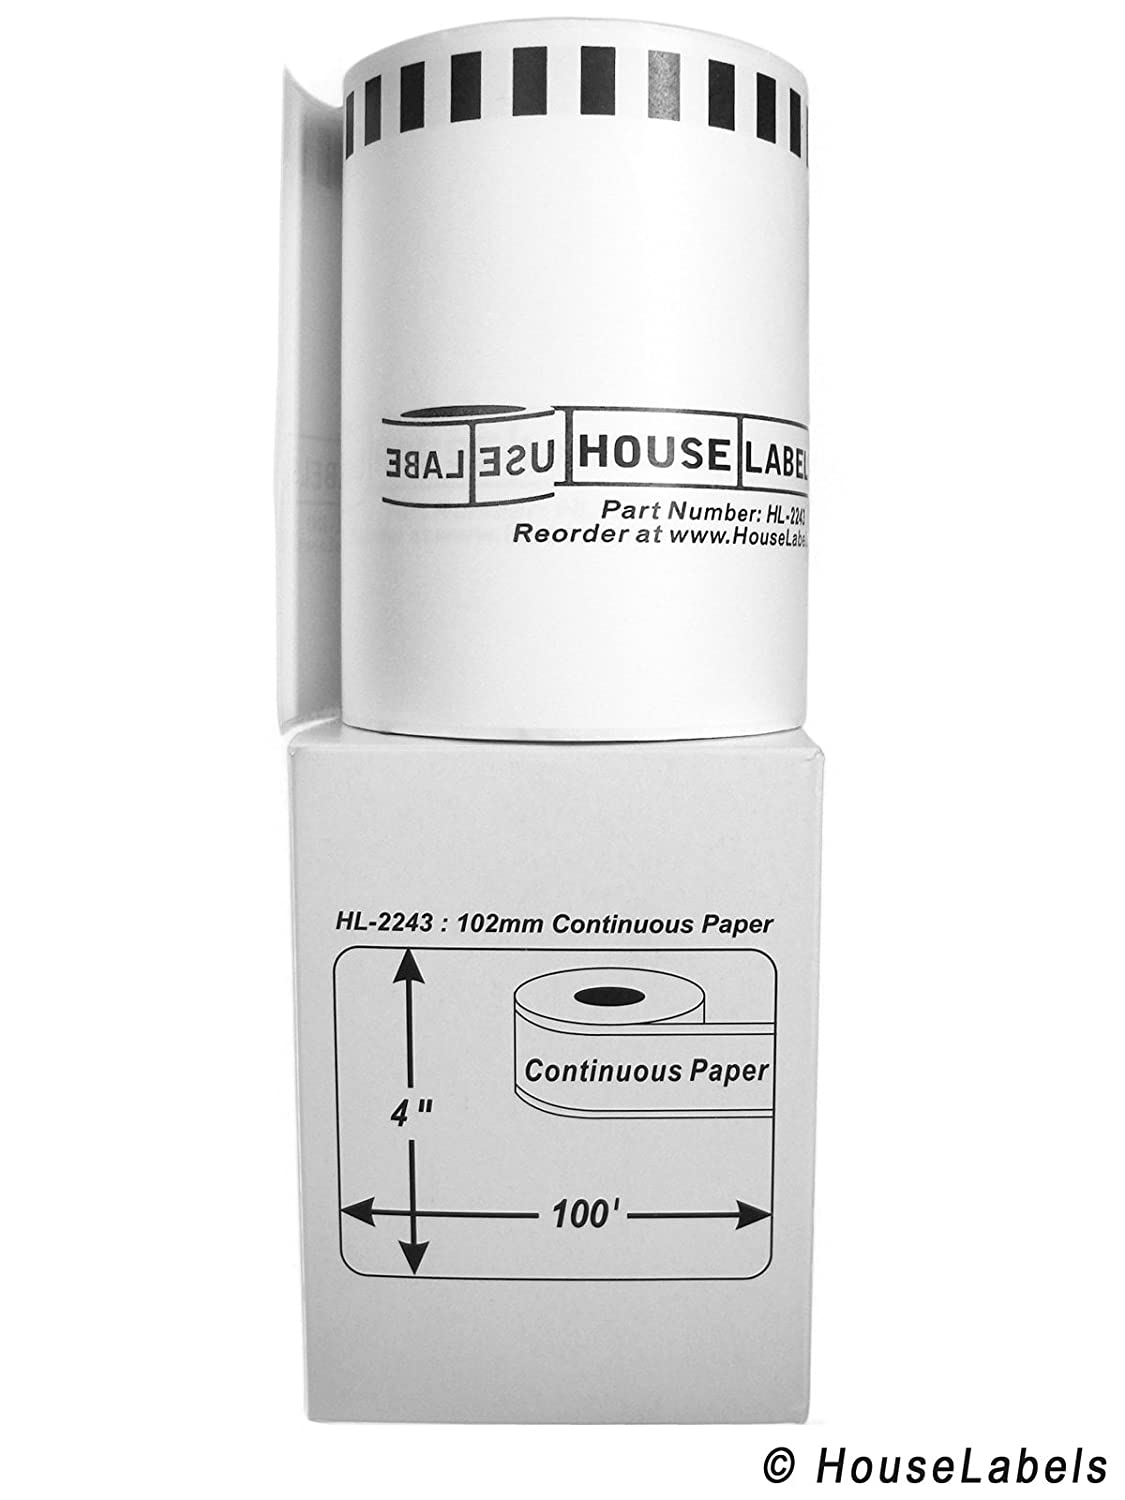 HouseLabels Compatible with Brother DK-2243 Continuous Paper Labels 4 Rolls; Continuous Paper - BPA Free! 4 x 100; 102mm30.48m